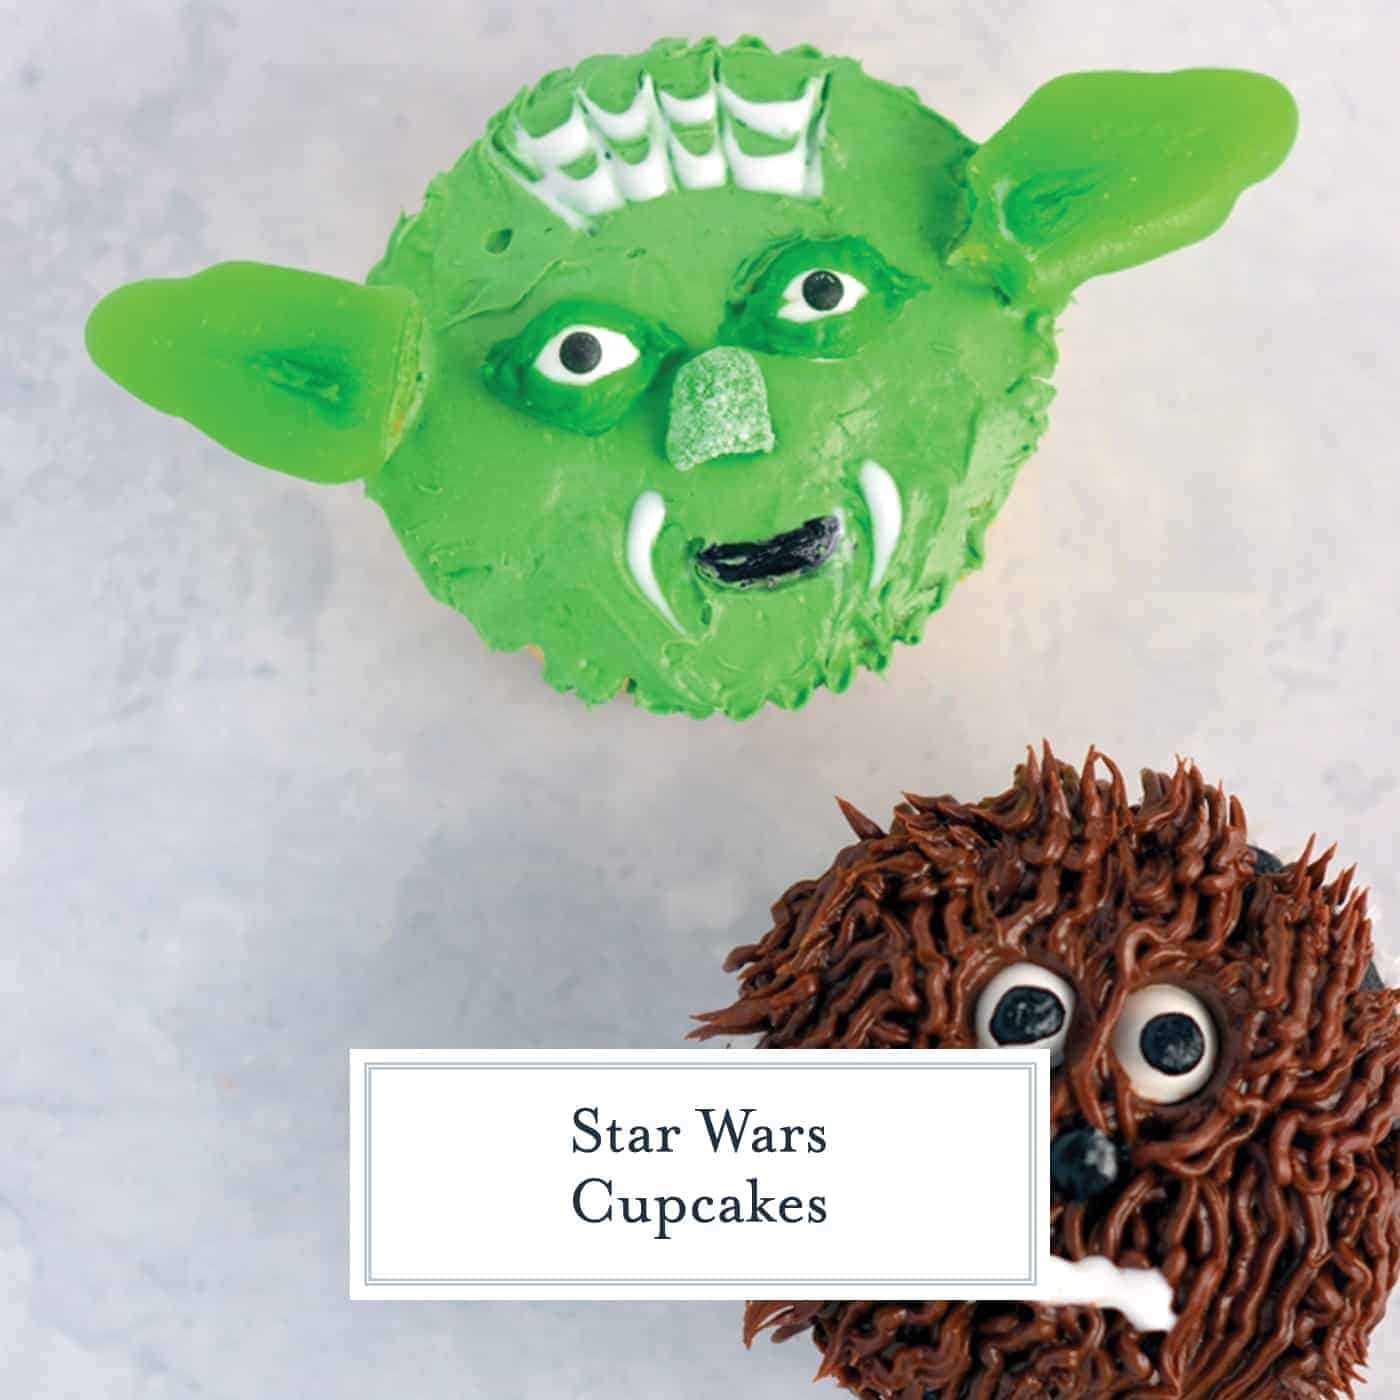 Super easy Yoda and Chewie cupcakes. If I can make these easy Star Wars cupcakes, so can you! #starwars #yoda #chewie www.savoryexperiments.com